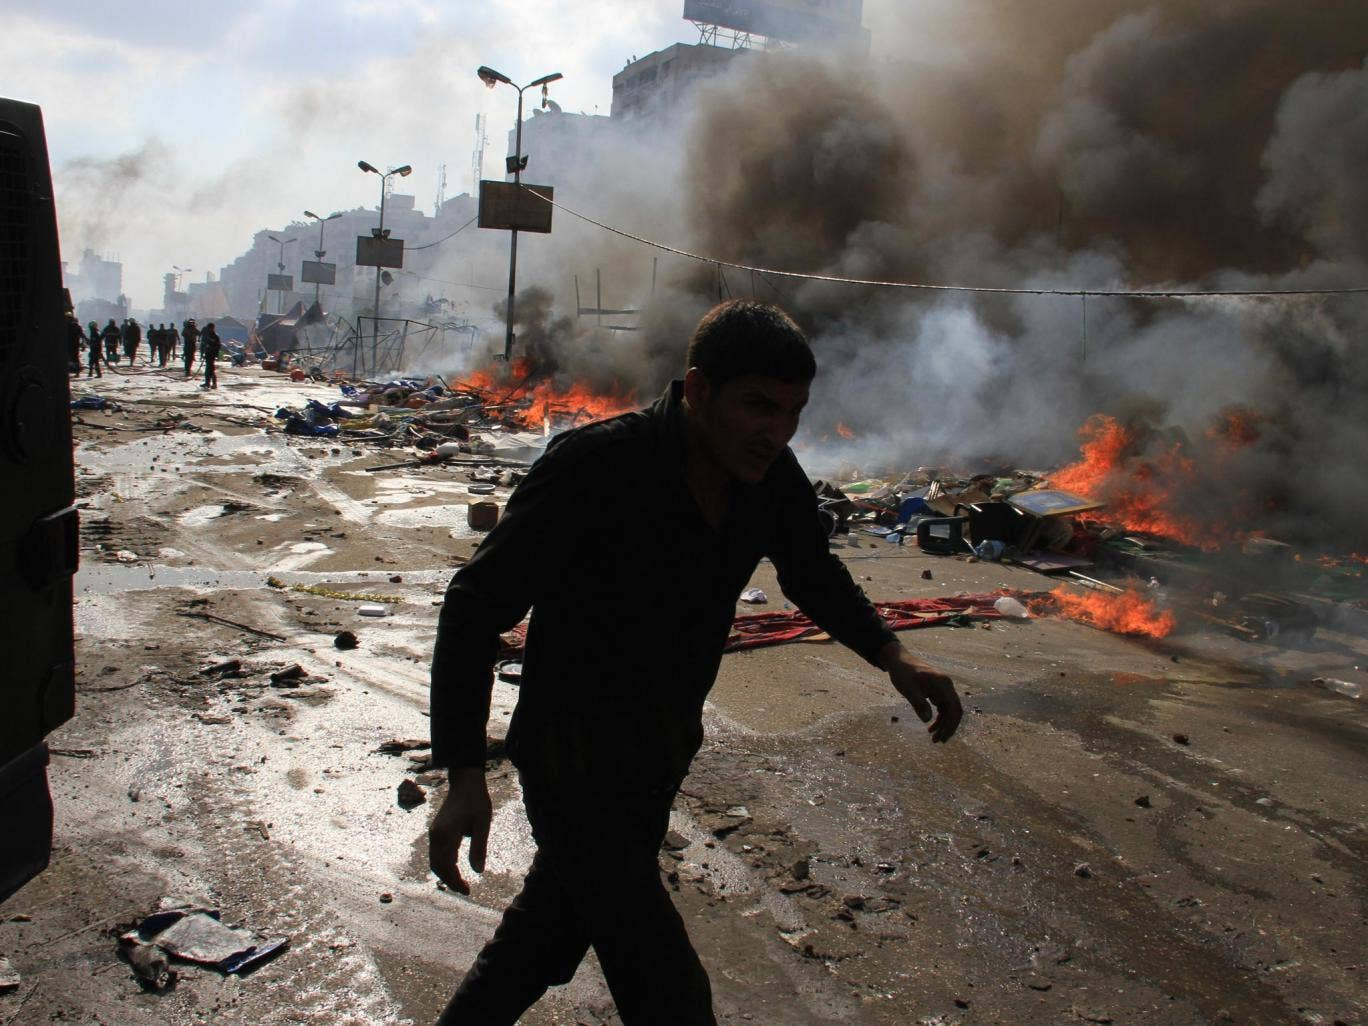 Egyptian security forces clear a sit-in by supporters of ousted Islamist President Mohammed Morsi in the eastern Nasr City district of Cairo